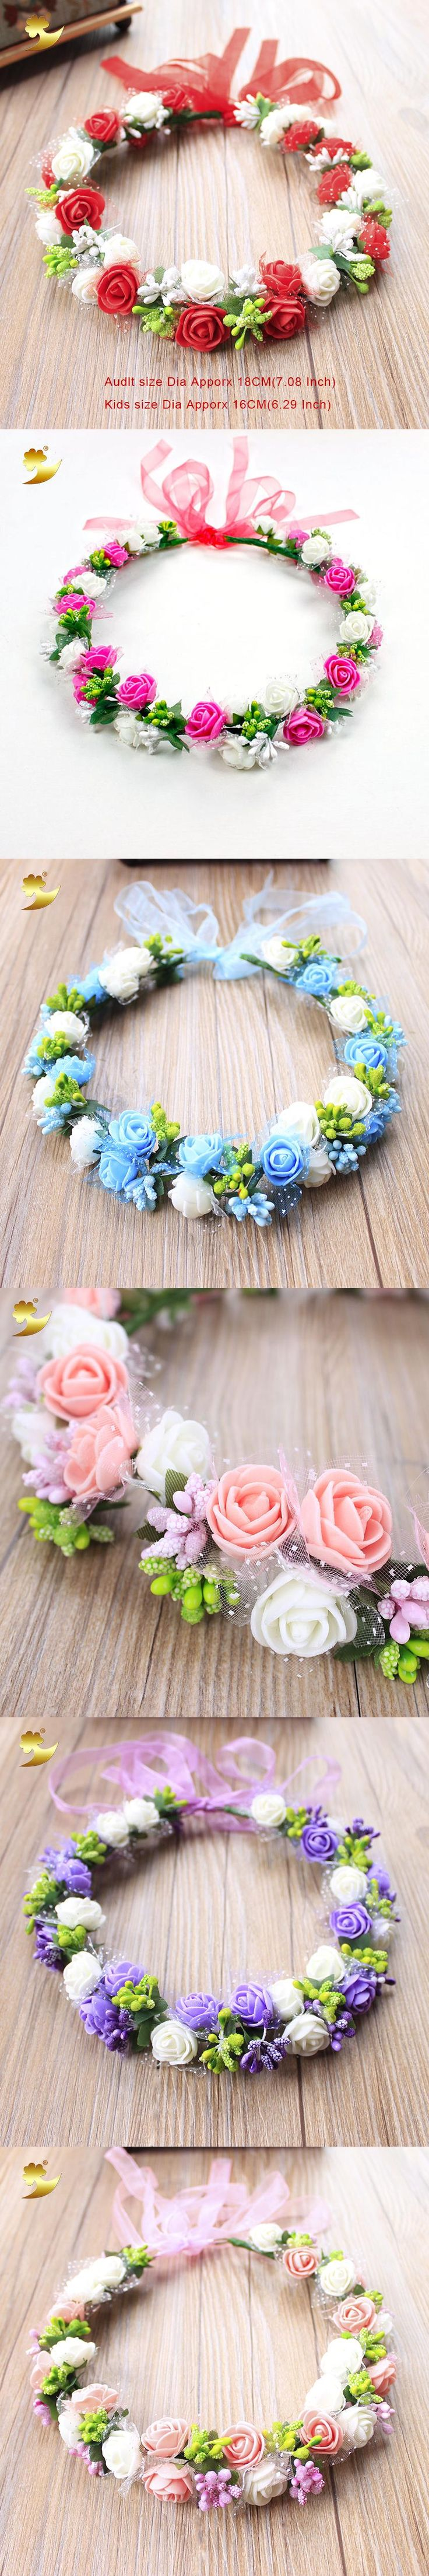 XinYun Headband For Women Bridal Crown Wedding Hair Accessories Adjustable Flower Crown Kids Rose Headwear Flower Head Wreath